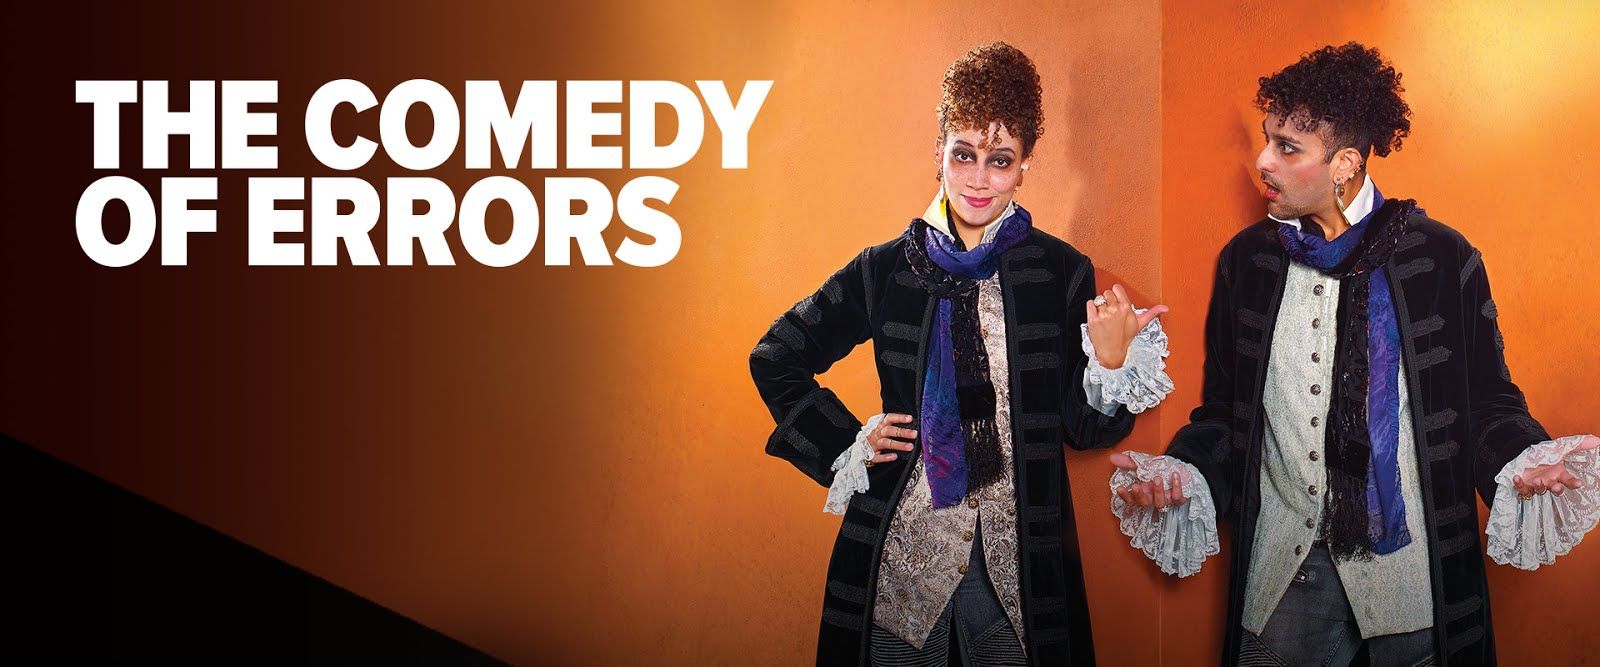 Stratford 2018 - Comedy of Errors